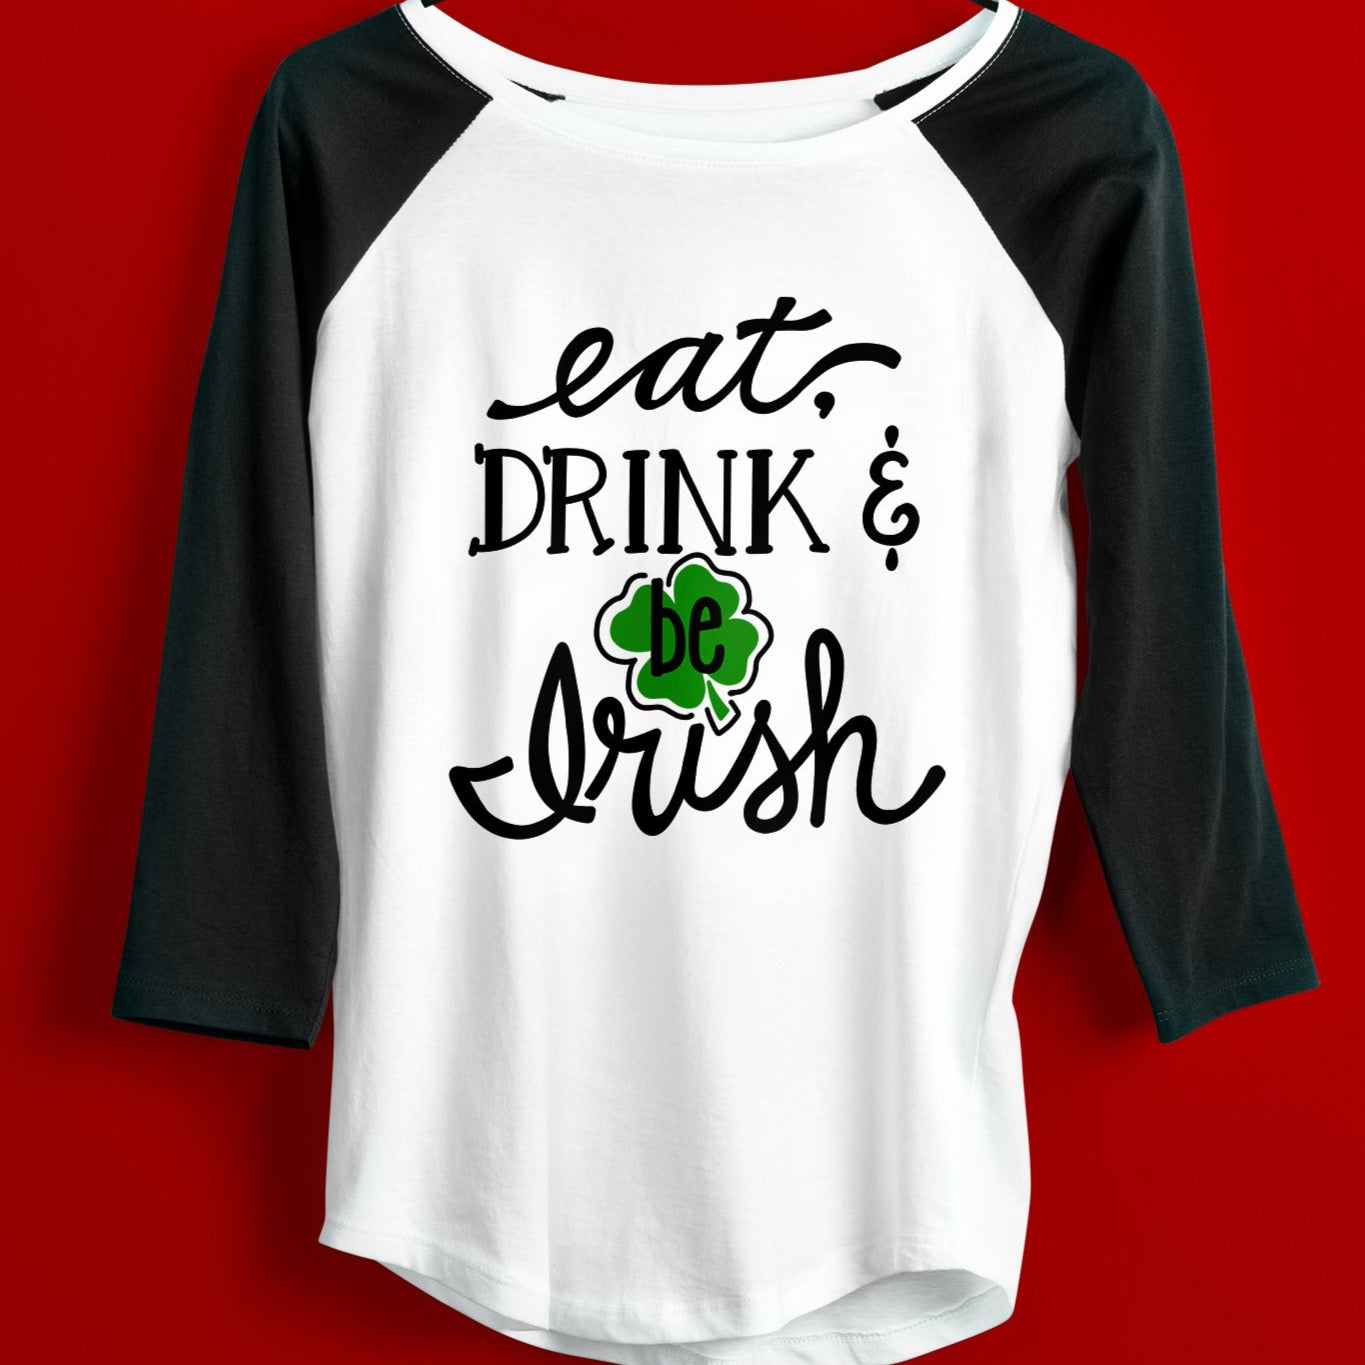 St. Patrick's Day Shirt SVG File, Eat Drink and be Irish SVG File, St. Patrick's Day SVG Files for Cricut, Funny Irish Svg Cut File